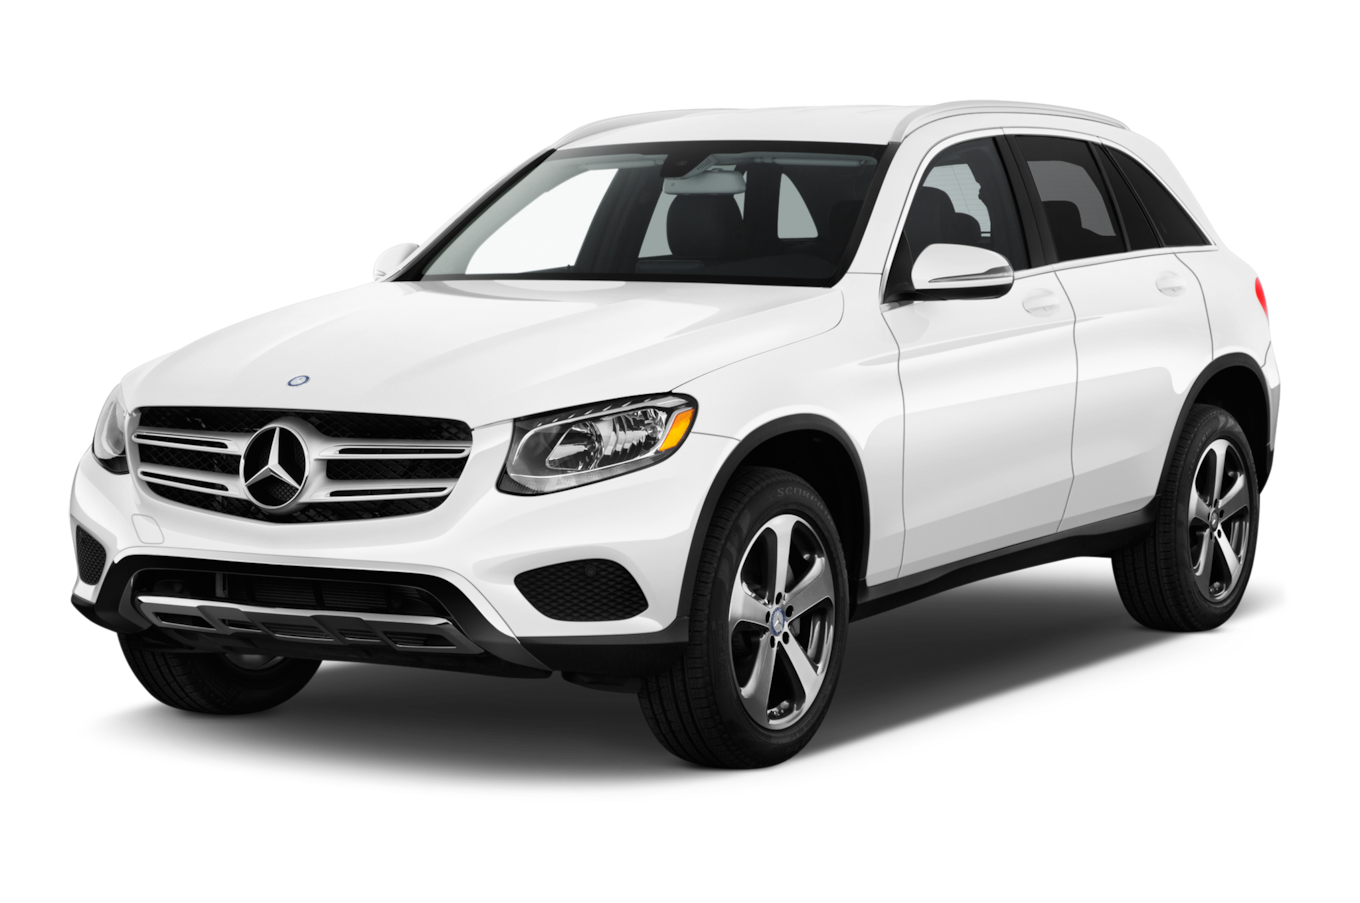 Mercedes-Benz GLC-Class Reviews: Research New & Used ...